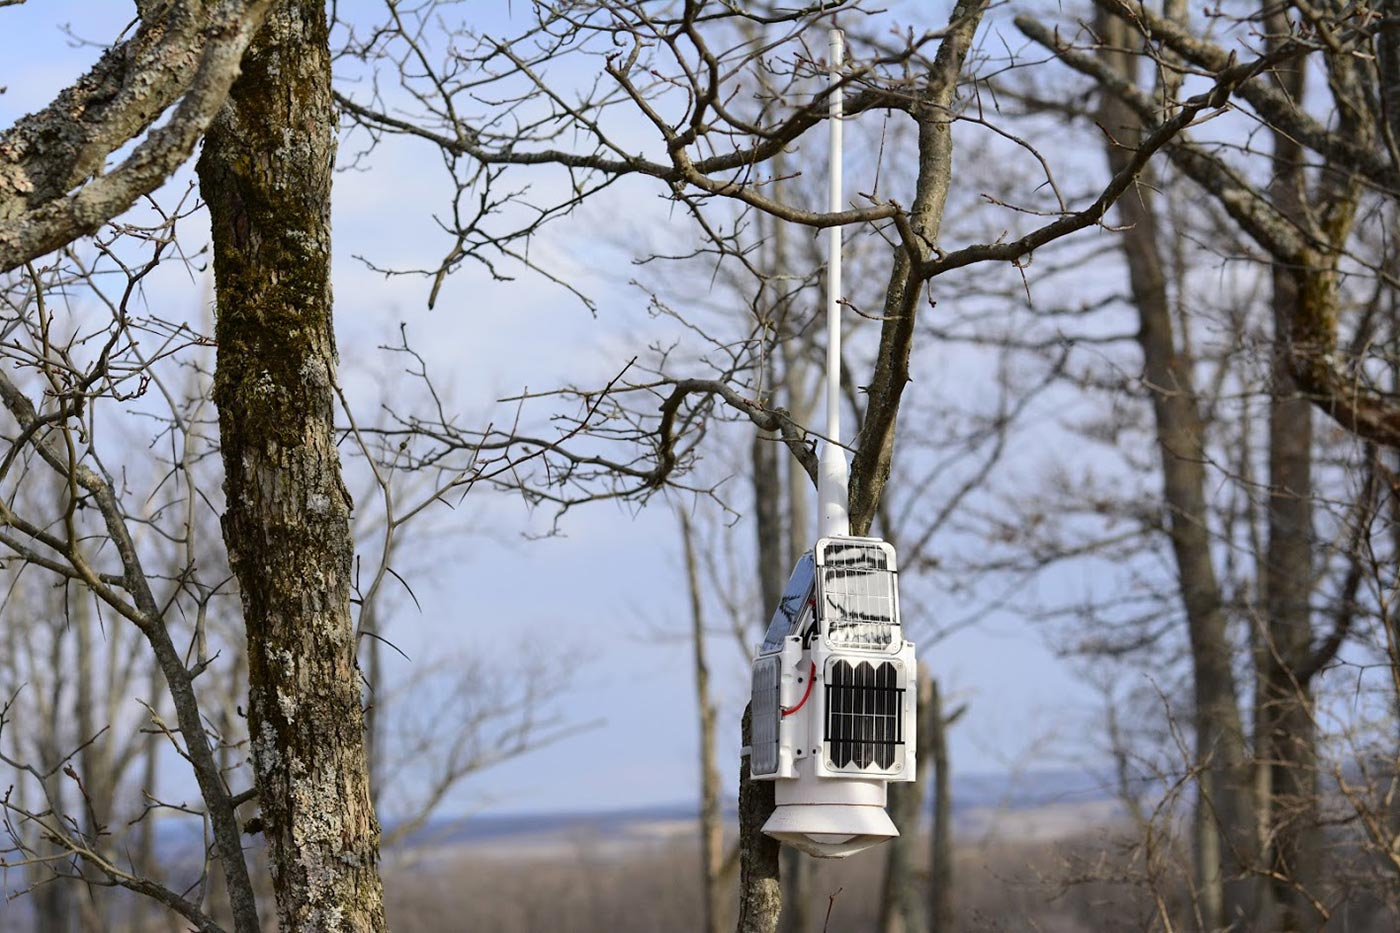 One of the Outland Analytics devices set up in the Finger Lakes National Forest.